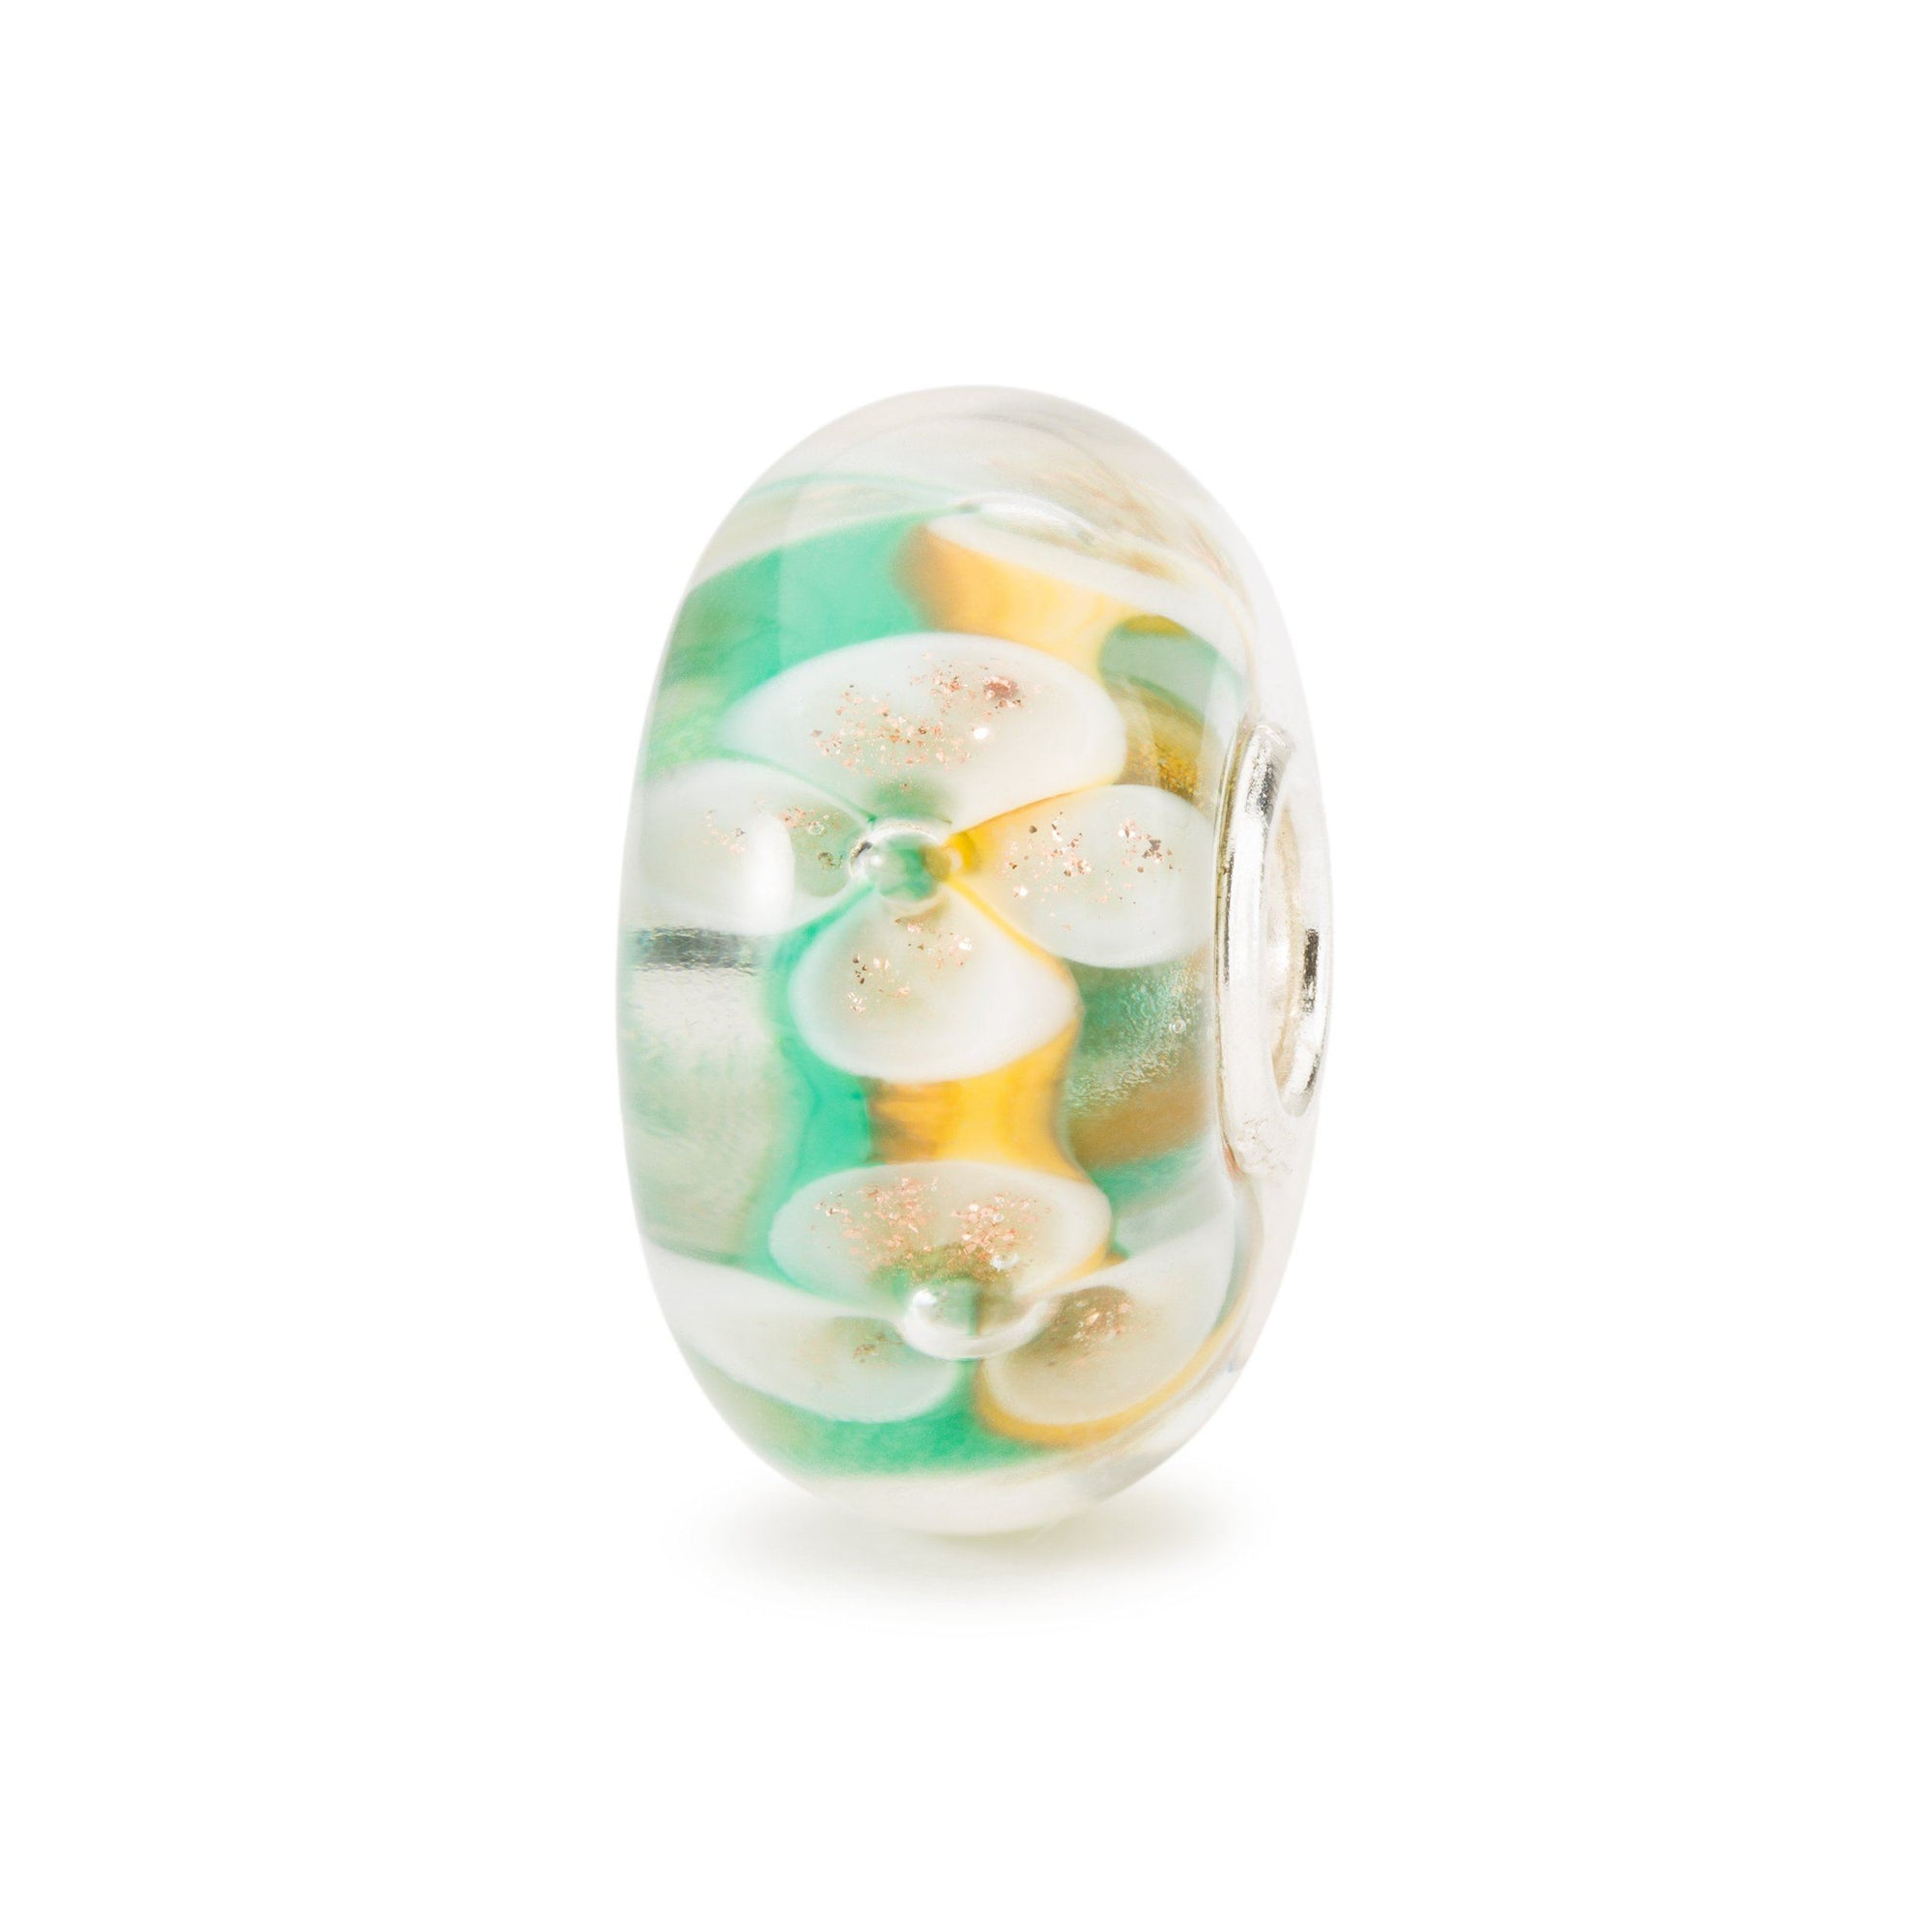 Glass  charm for for modern charm bracelet with white flowers over a background of green and yellow, for a Trollbeads bracelet.